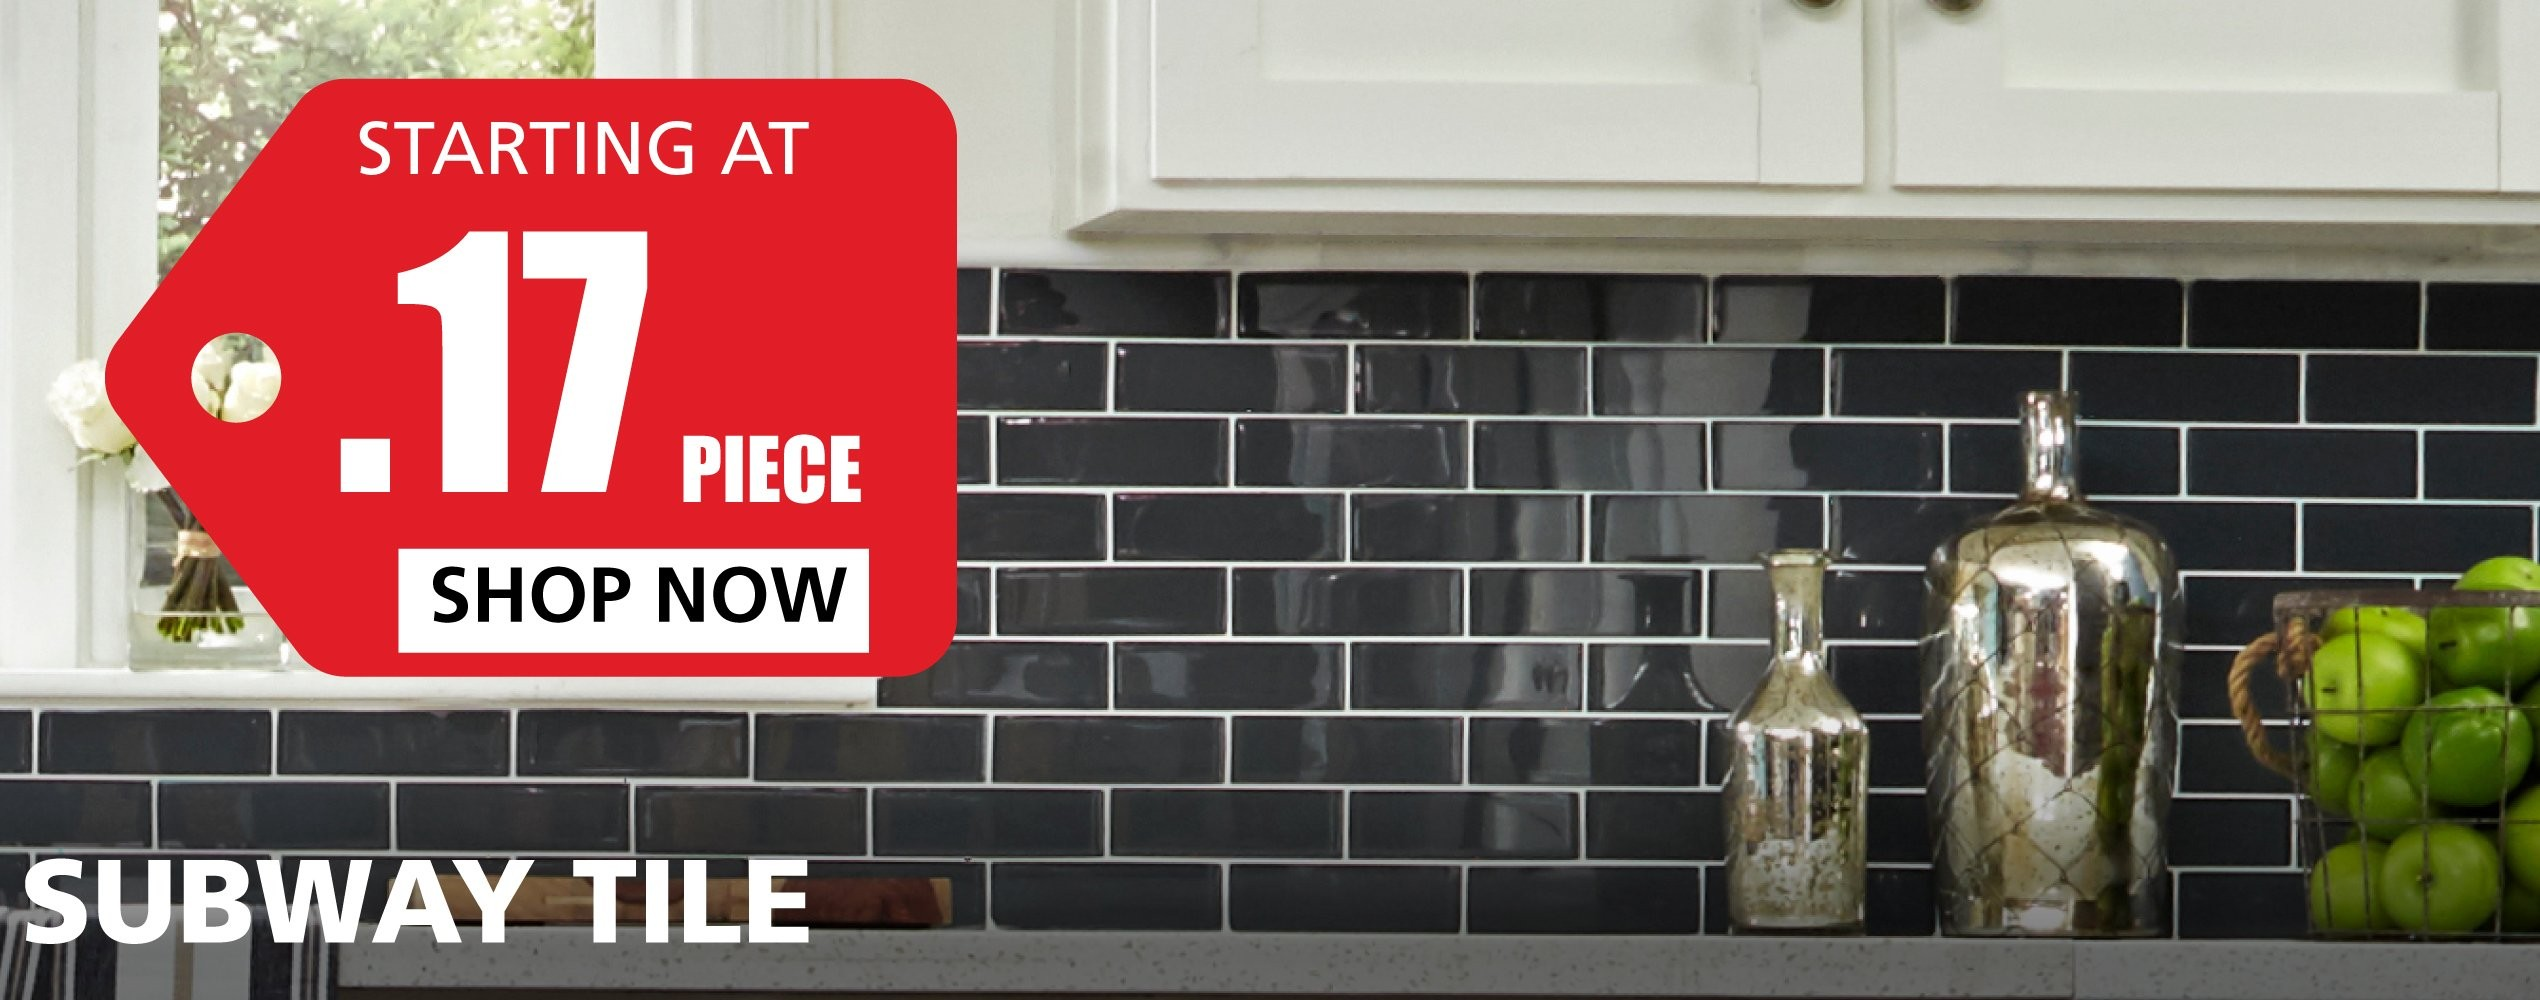 Subway Tile starting at $0.17 per piece